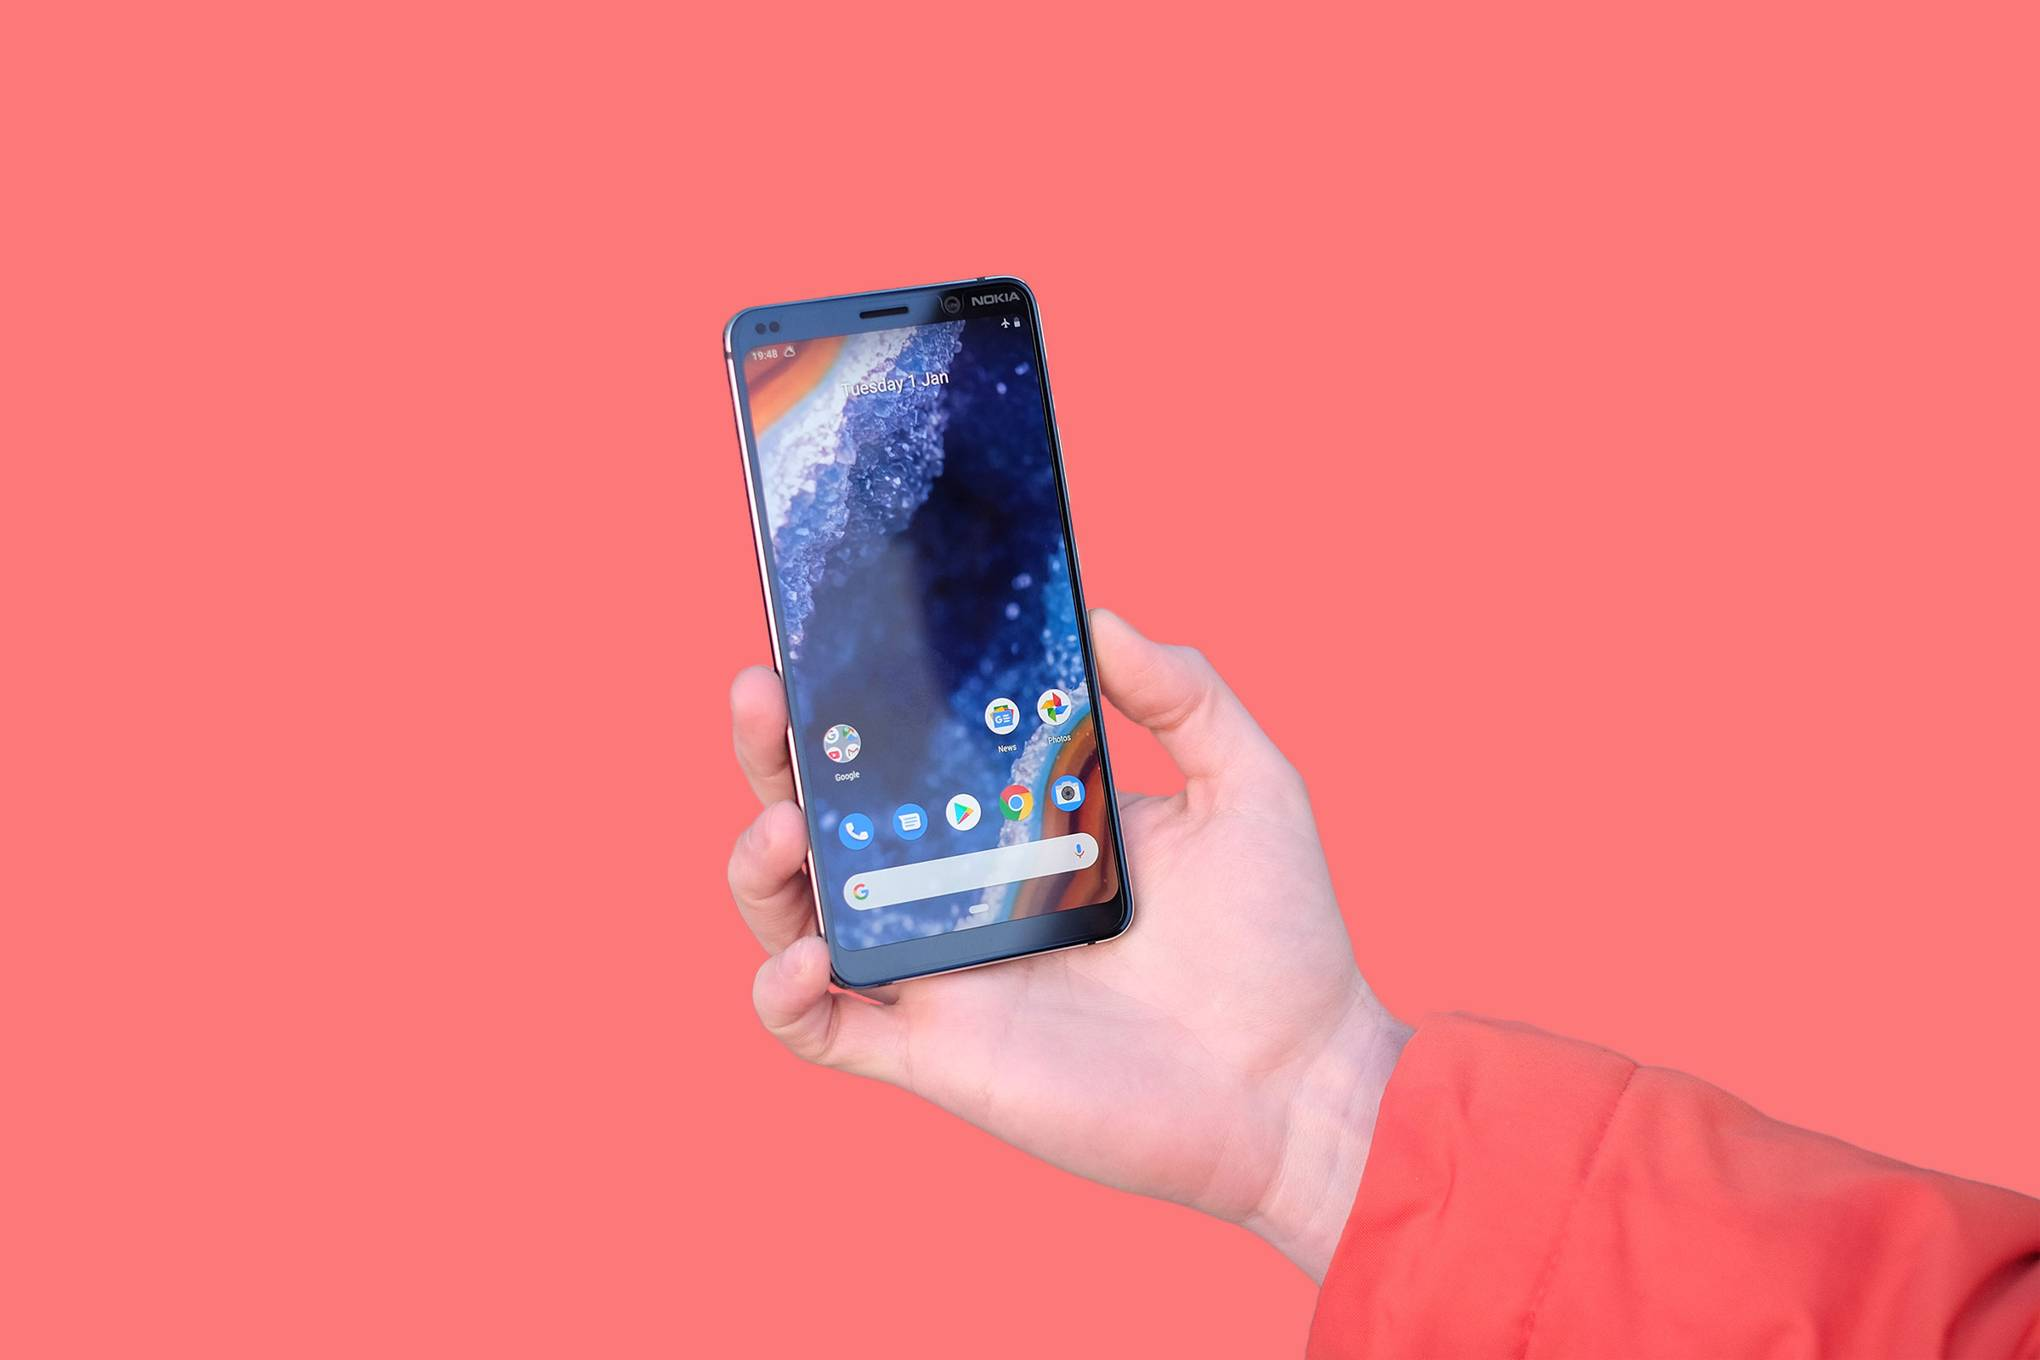 All the new phones at MWC 2019 from Samsung, Huawei, Xiaomi, Nokia